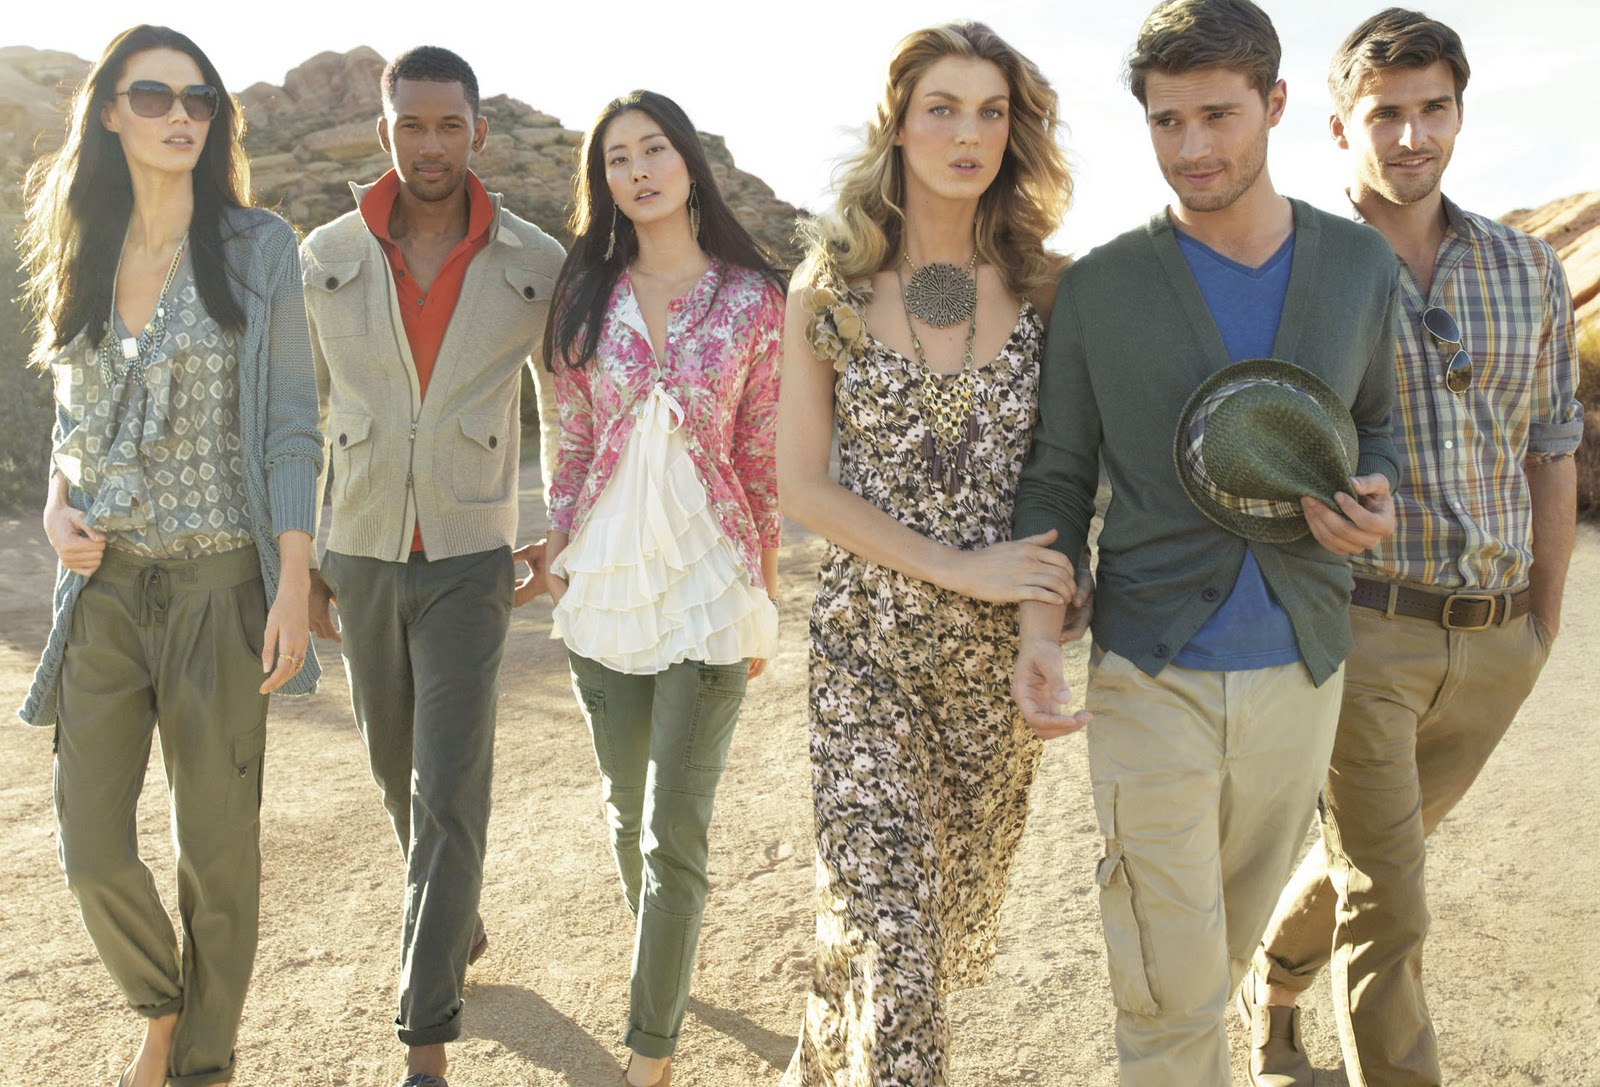 Banana Republic Creates Spring 2011 Campaign Film